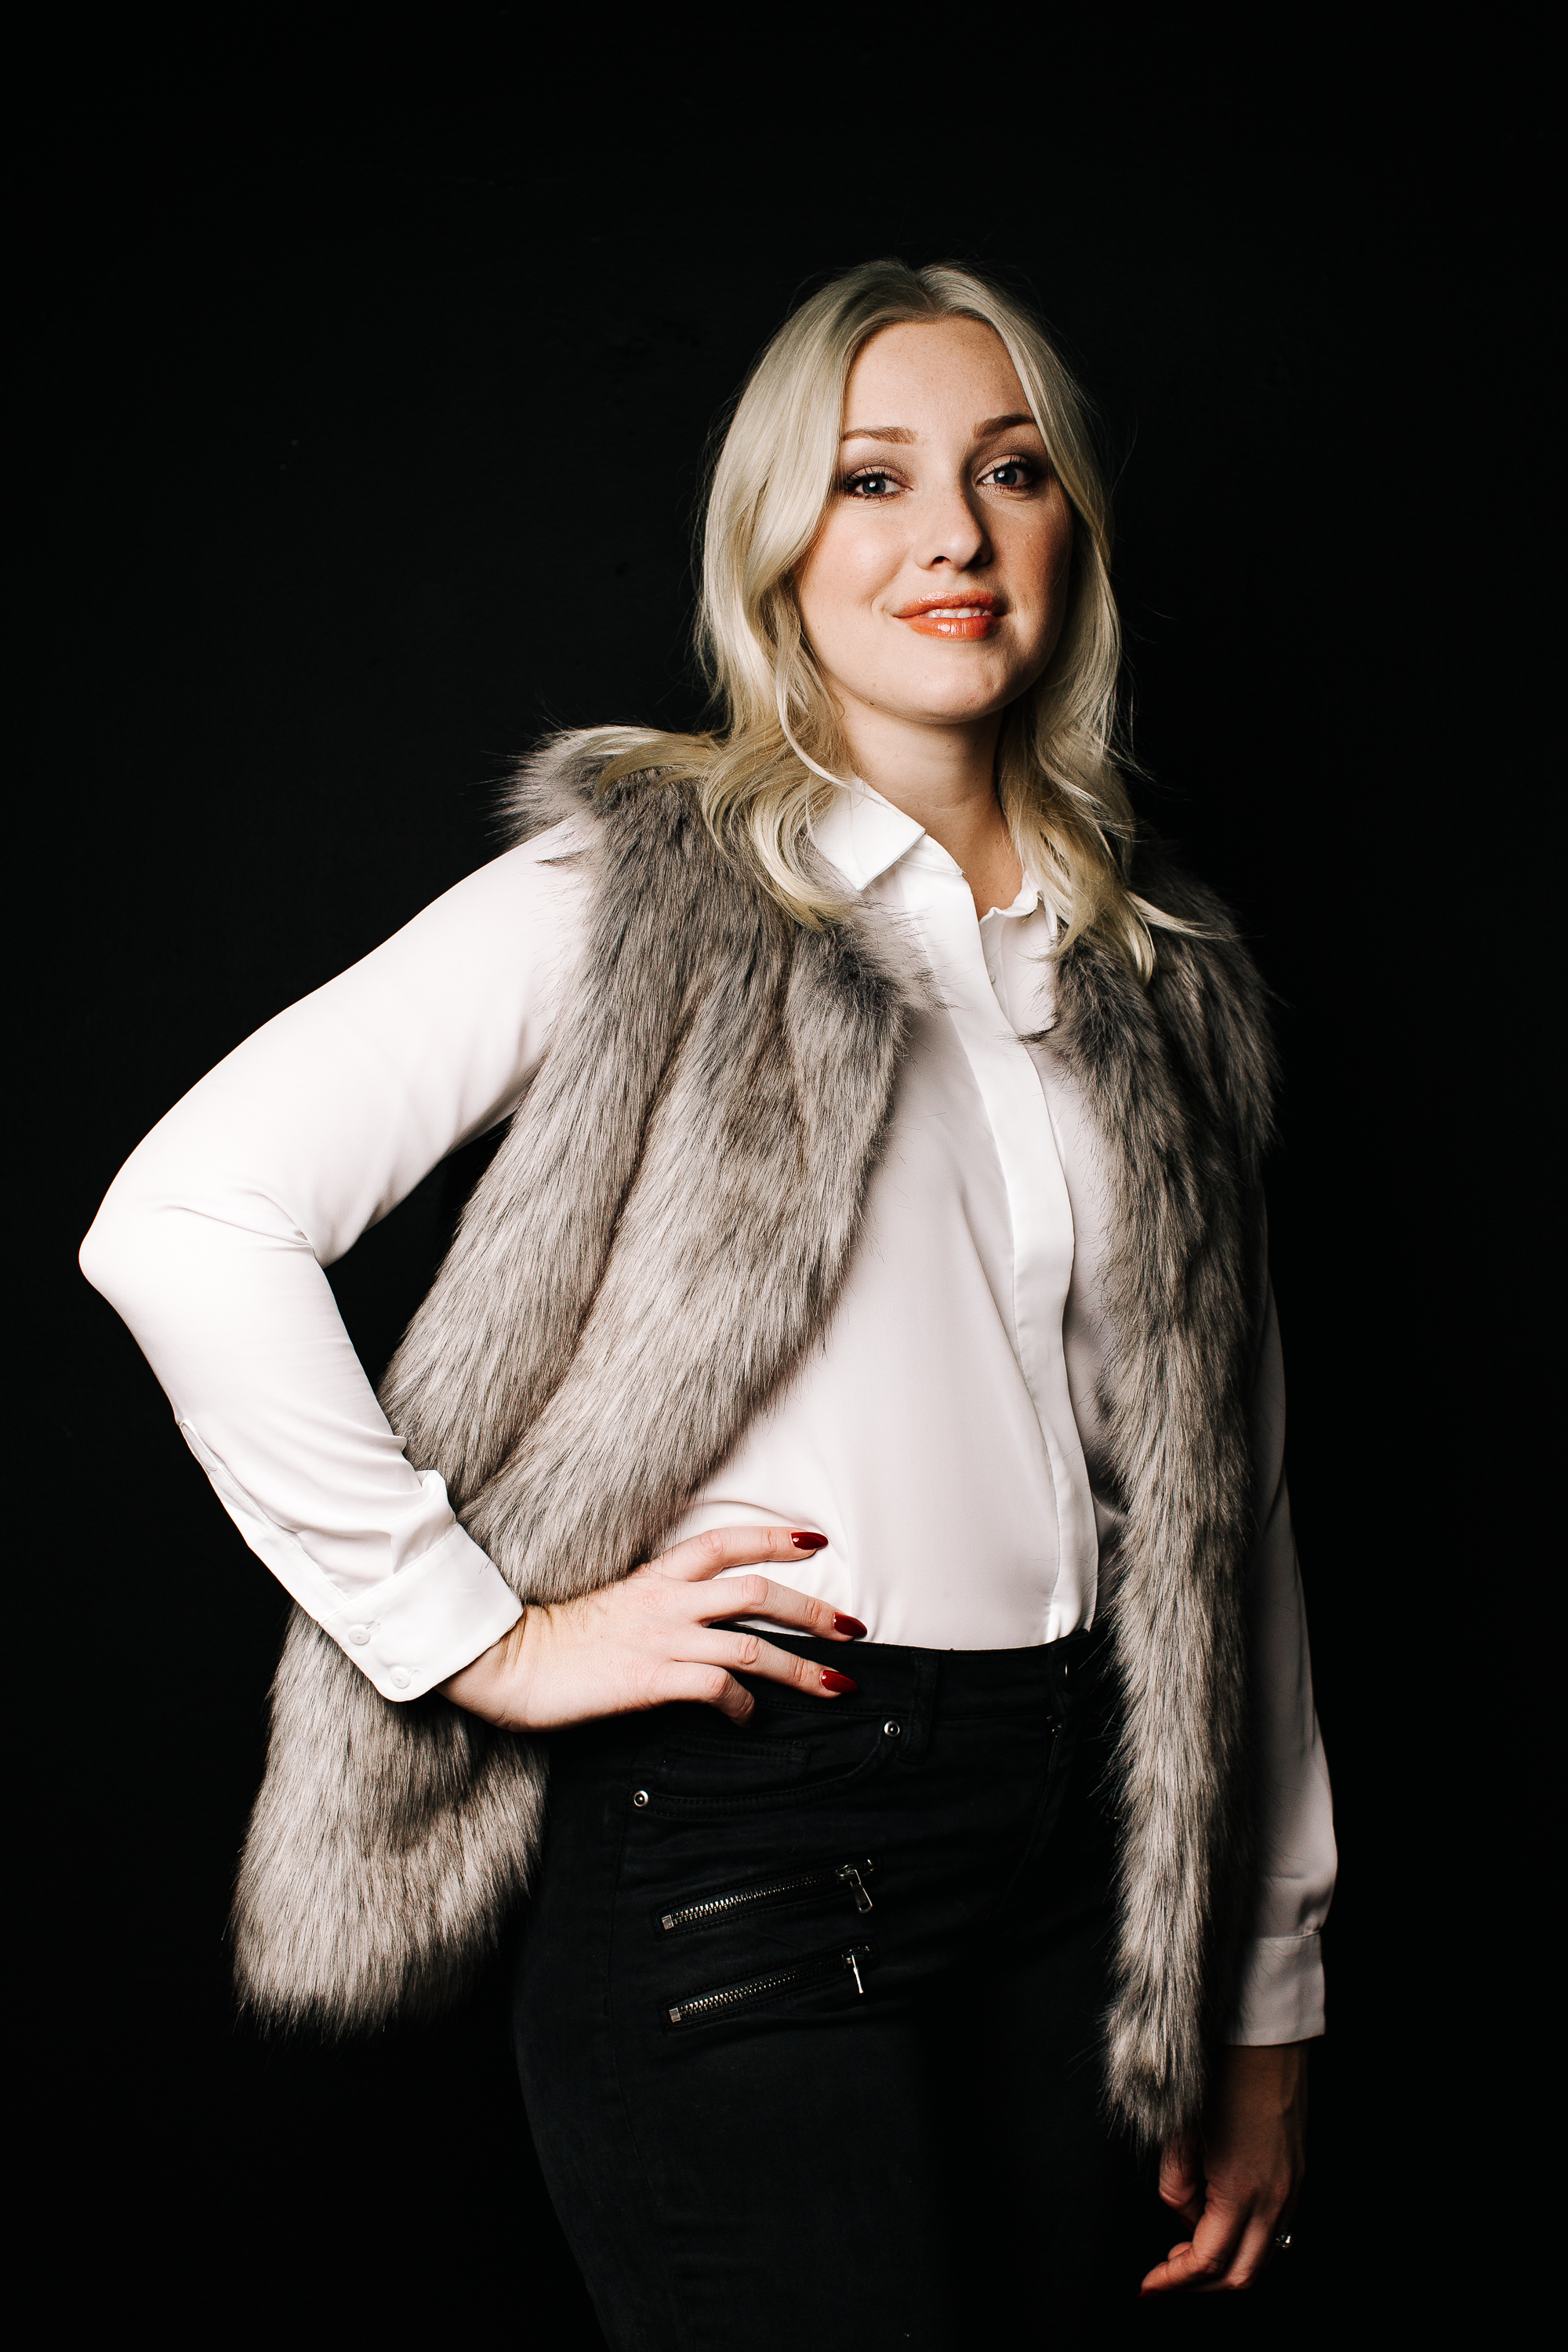 trish-taylor-white-shirt-fur-vest-zipper-jeans